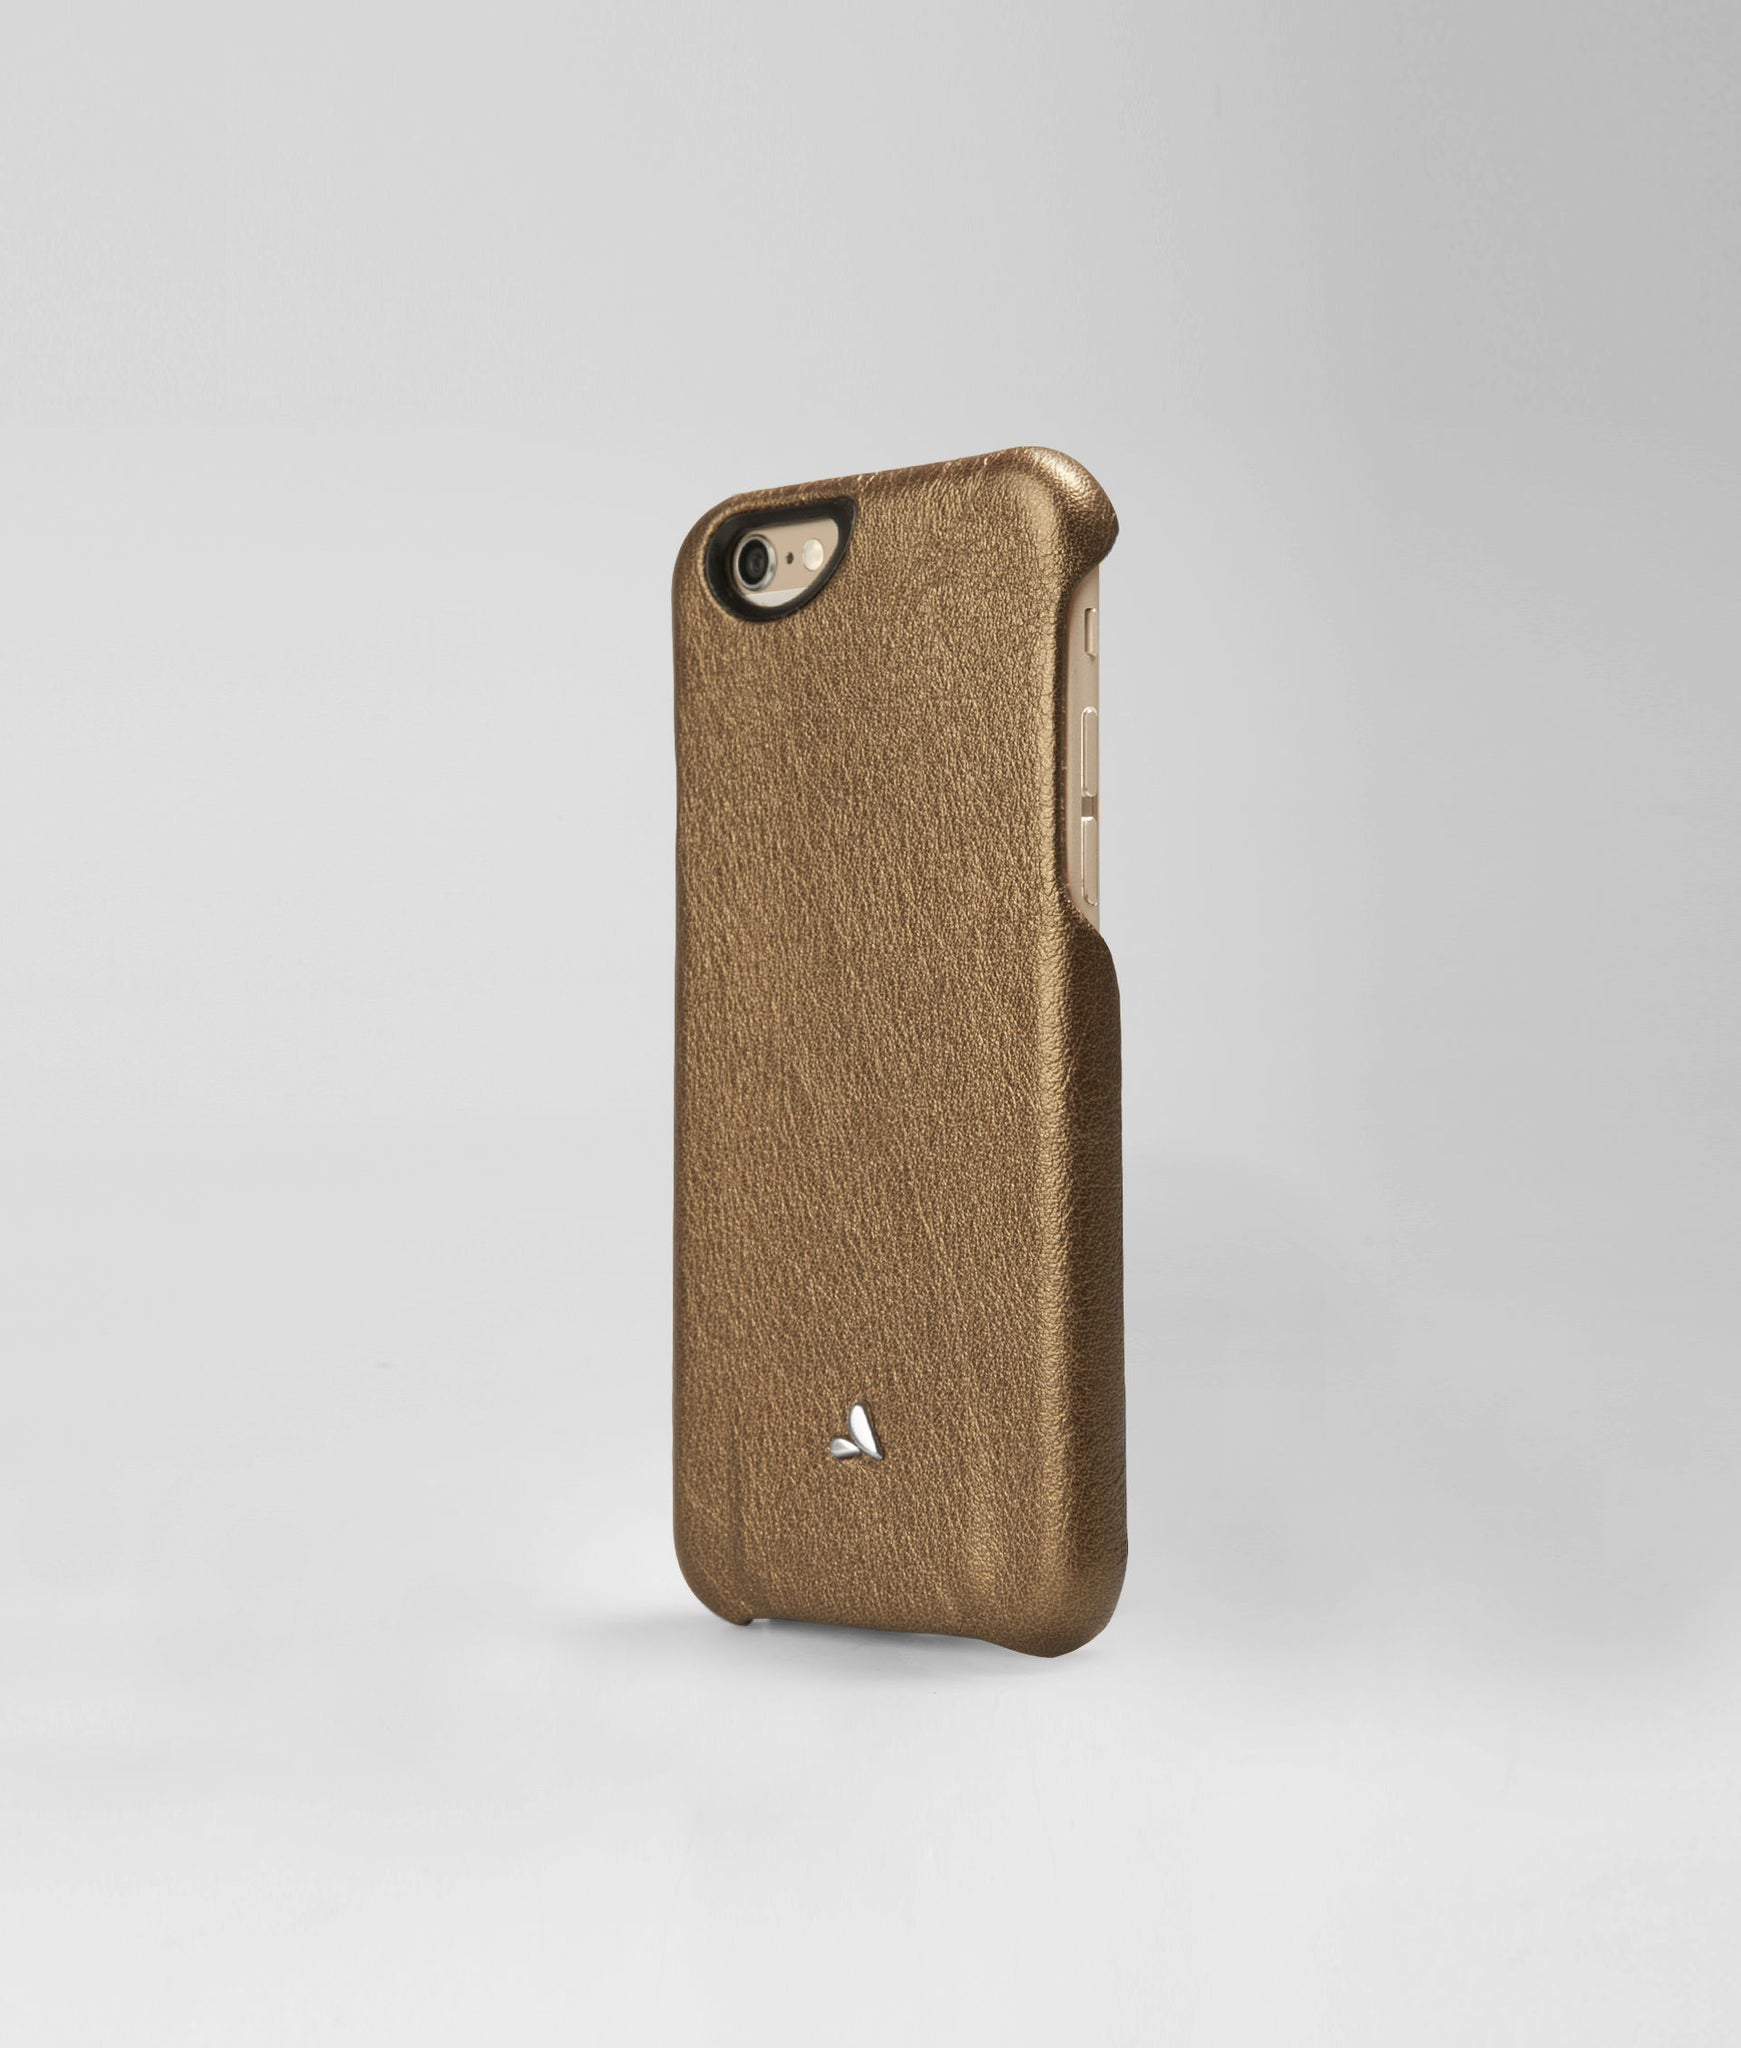 iPhone 6/6s Leather Case - Vintage Metallic Grip